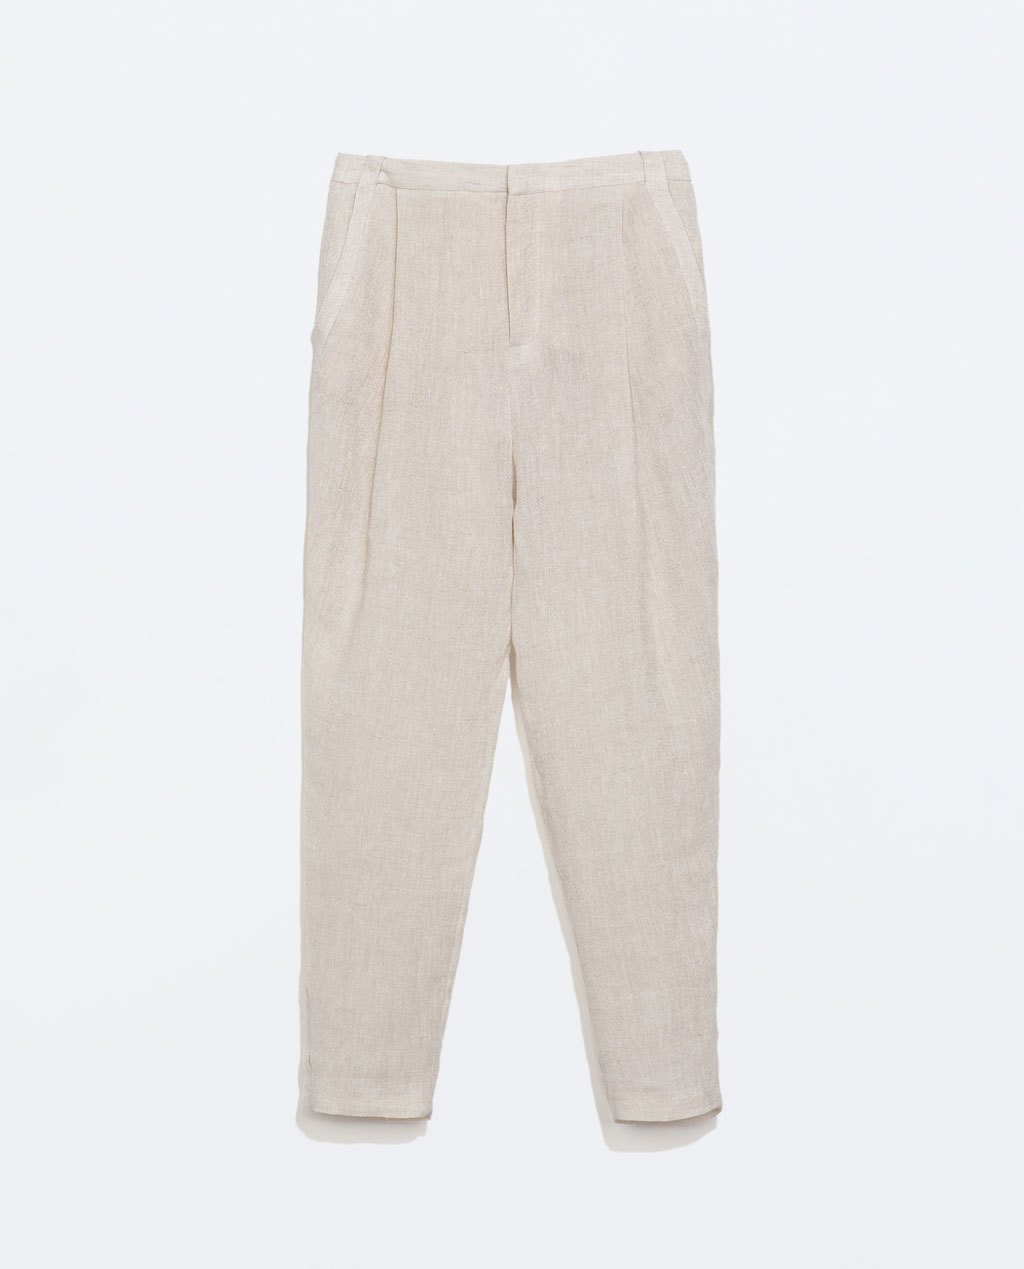 Linen Side Stripe Trousers - pattern: plain; style: peg leg; waist: high rise; predominant colour: stone; occasions: casual, creative work; length: ankle length; fibres: linen - mix; texture group: linen; fit: tapered; pattern type: fabric; season: s/s 2014